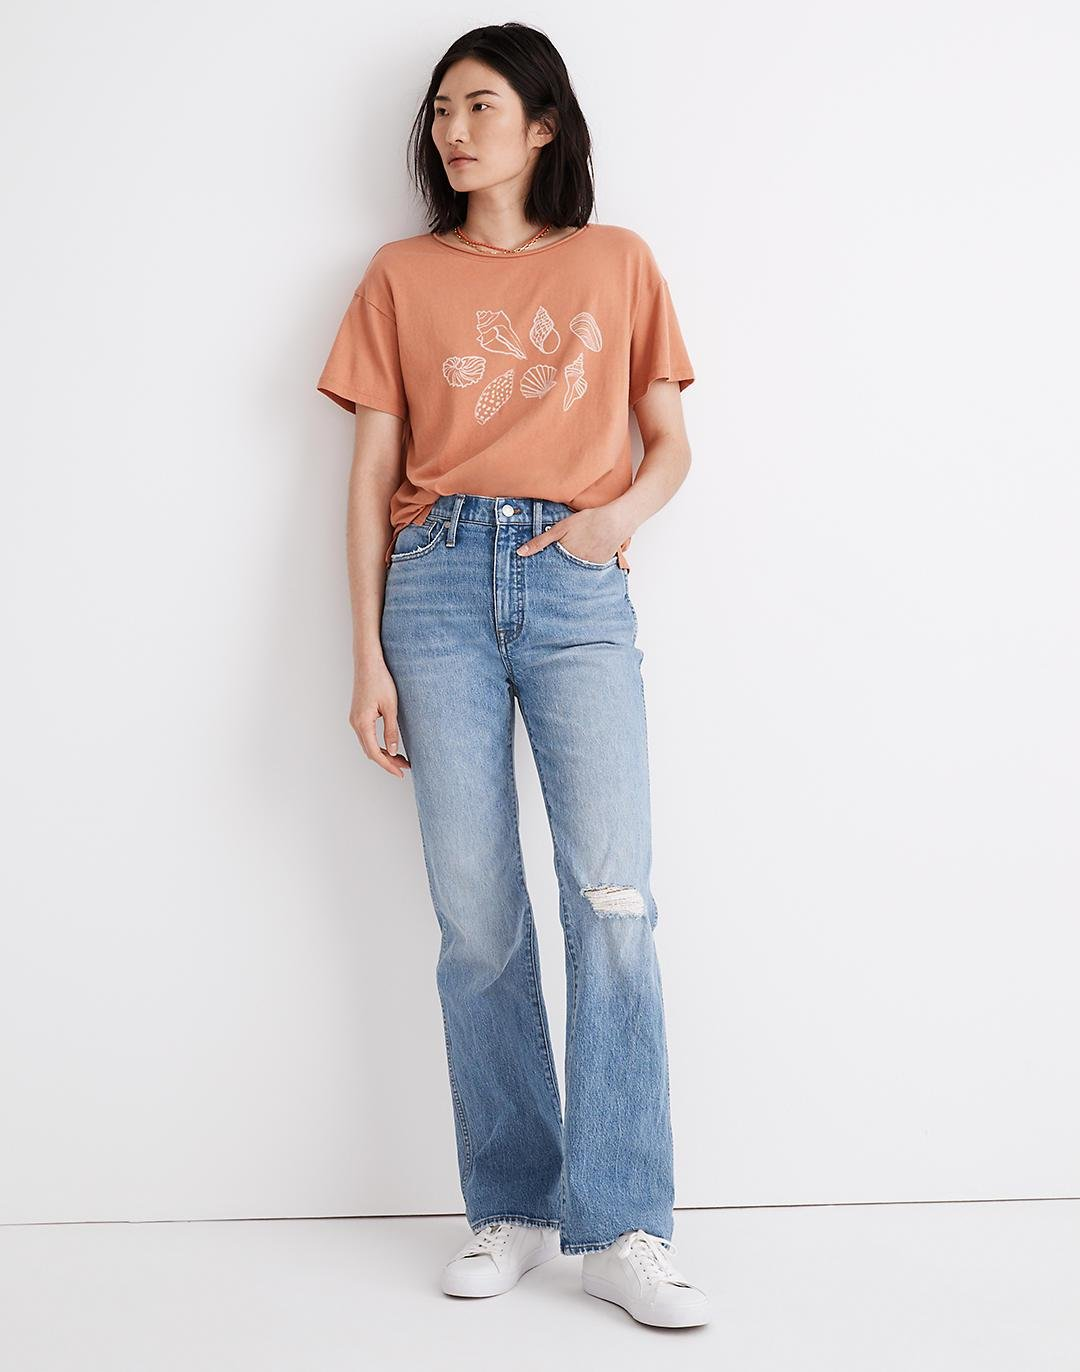 High-Rise Bootcut Jeans in Firth Wash: Knee-Rip Edition